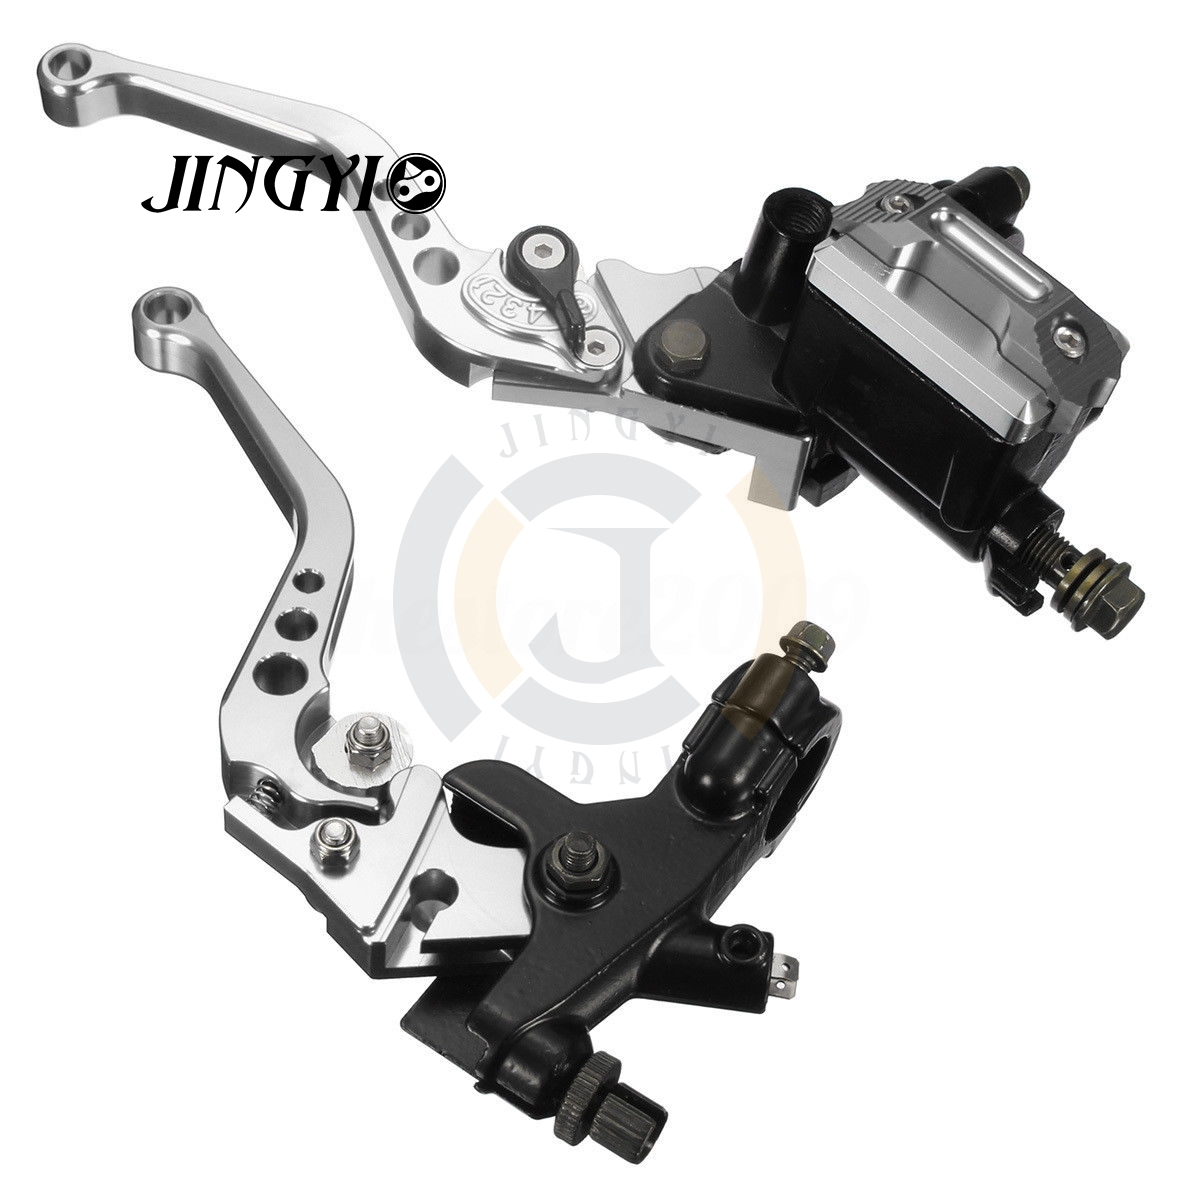 7/8 CNC Master Cylinder Cover Motorcycle Clutch Brake Lever FOR BMW R NINE T GSX-S1000 KTM EXC 300 BMW R1200GS LC SPORTSTER hot sale motorcycle accessories 7 8 hydraulic levers cnc motocross brake master cylinder lever for ktm 105sx 2009 2010 2011